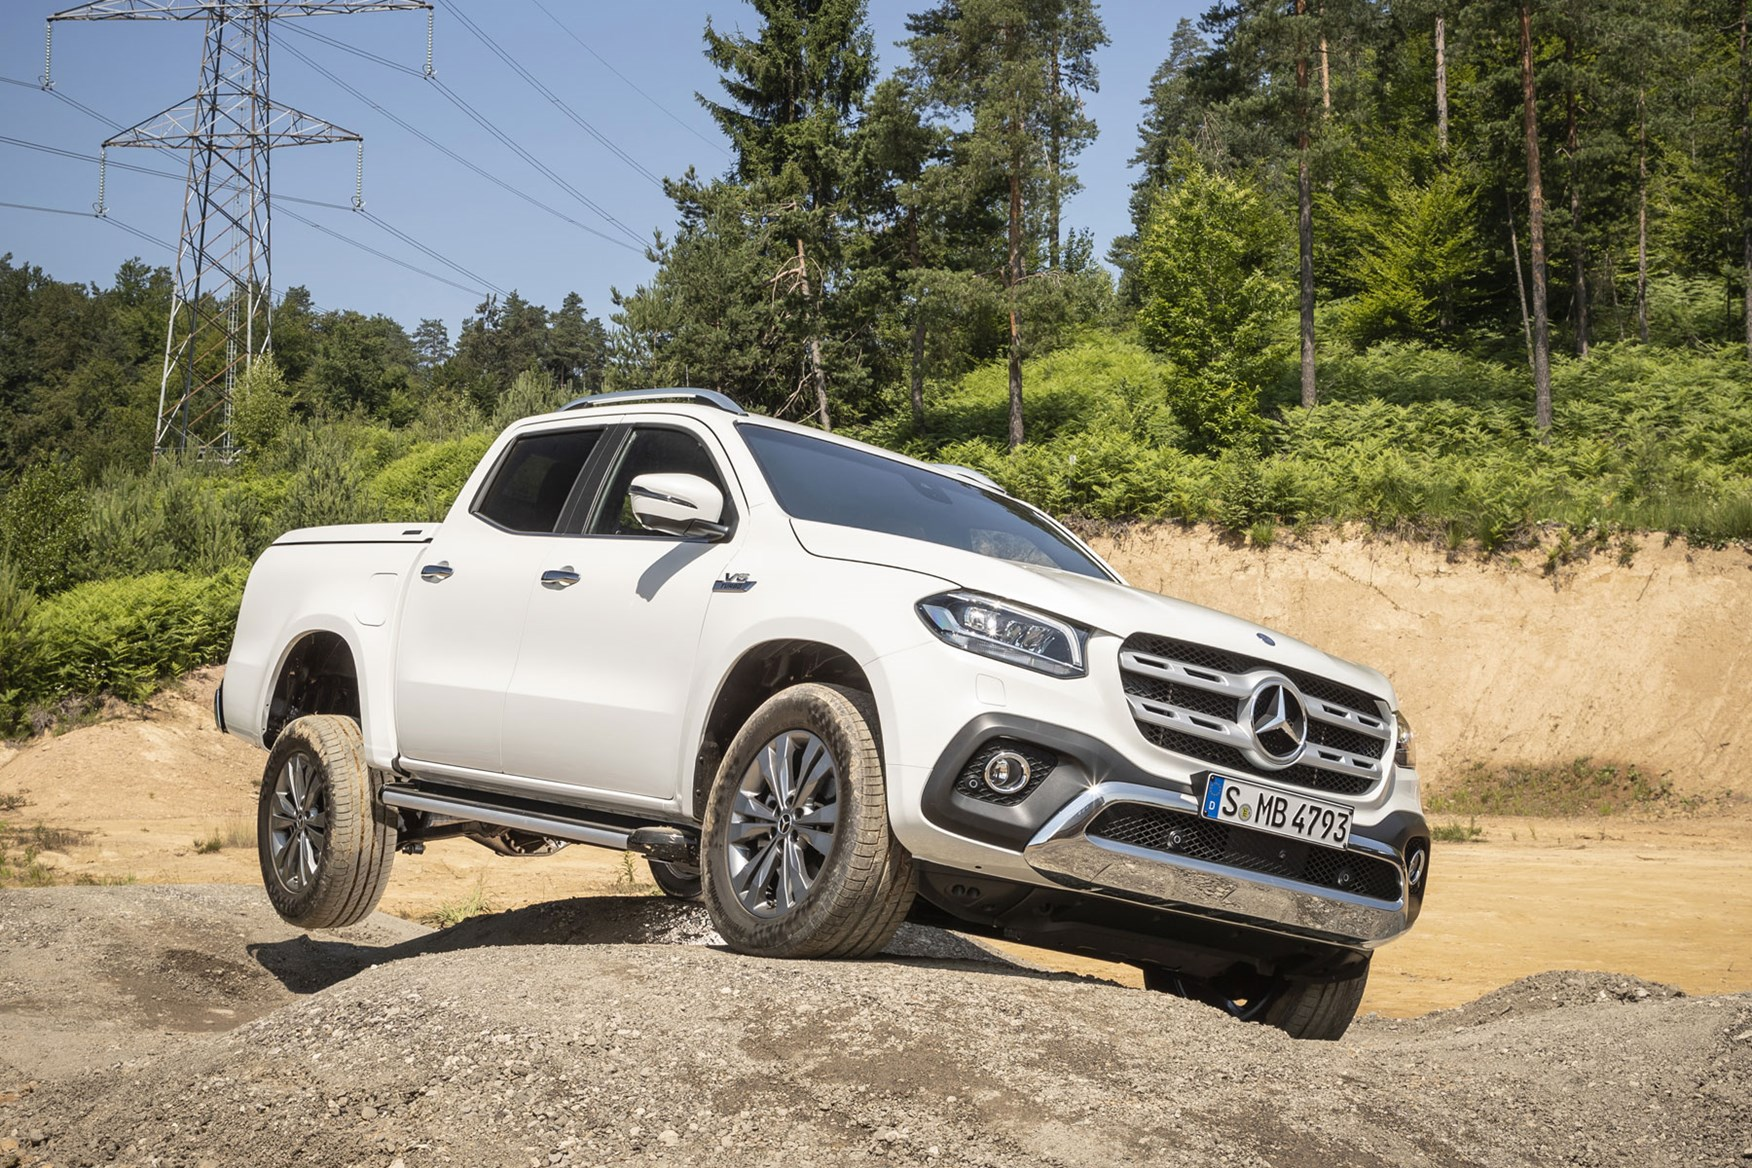 mercedes x class x 350 d power 2018 review 3 0 litre v6 turbo driven at last parkers. Black Bedroom Furniture Sets. Home Design Ideas